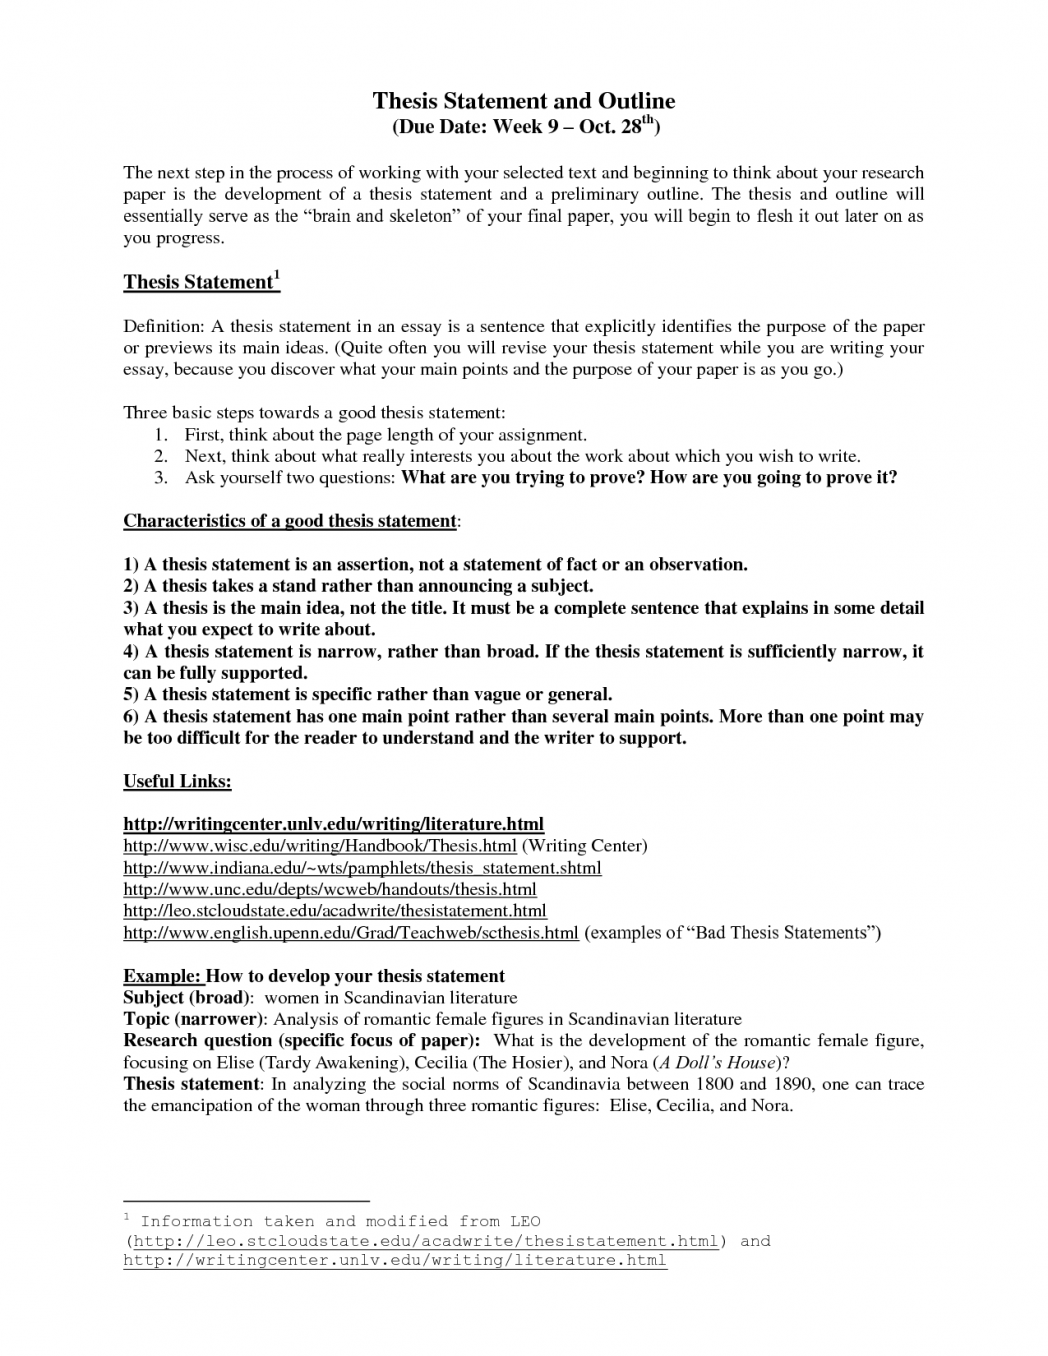 015 Thesis Statement Essay Sample Narrative Cover Letter Example Essays And Outline Template Wx8 Writing Powerpoint Ppt Step By 4th Grade About Being Judged Quizlet Someone Else Stirring Definition Examples For Argumentative Full